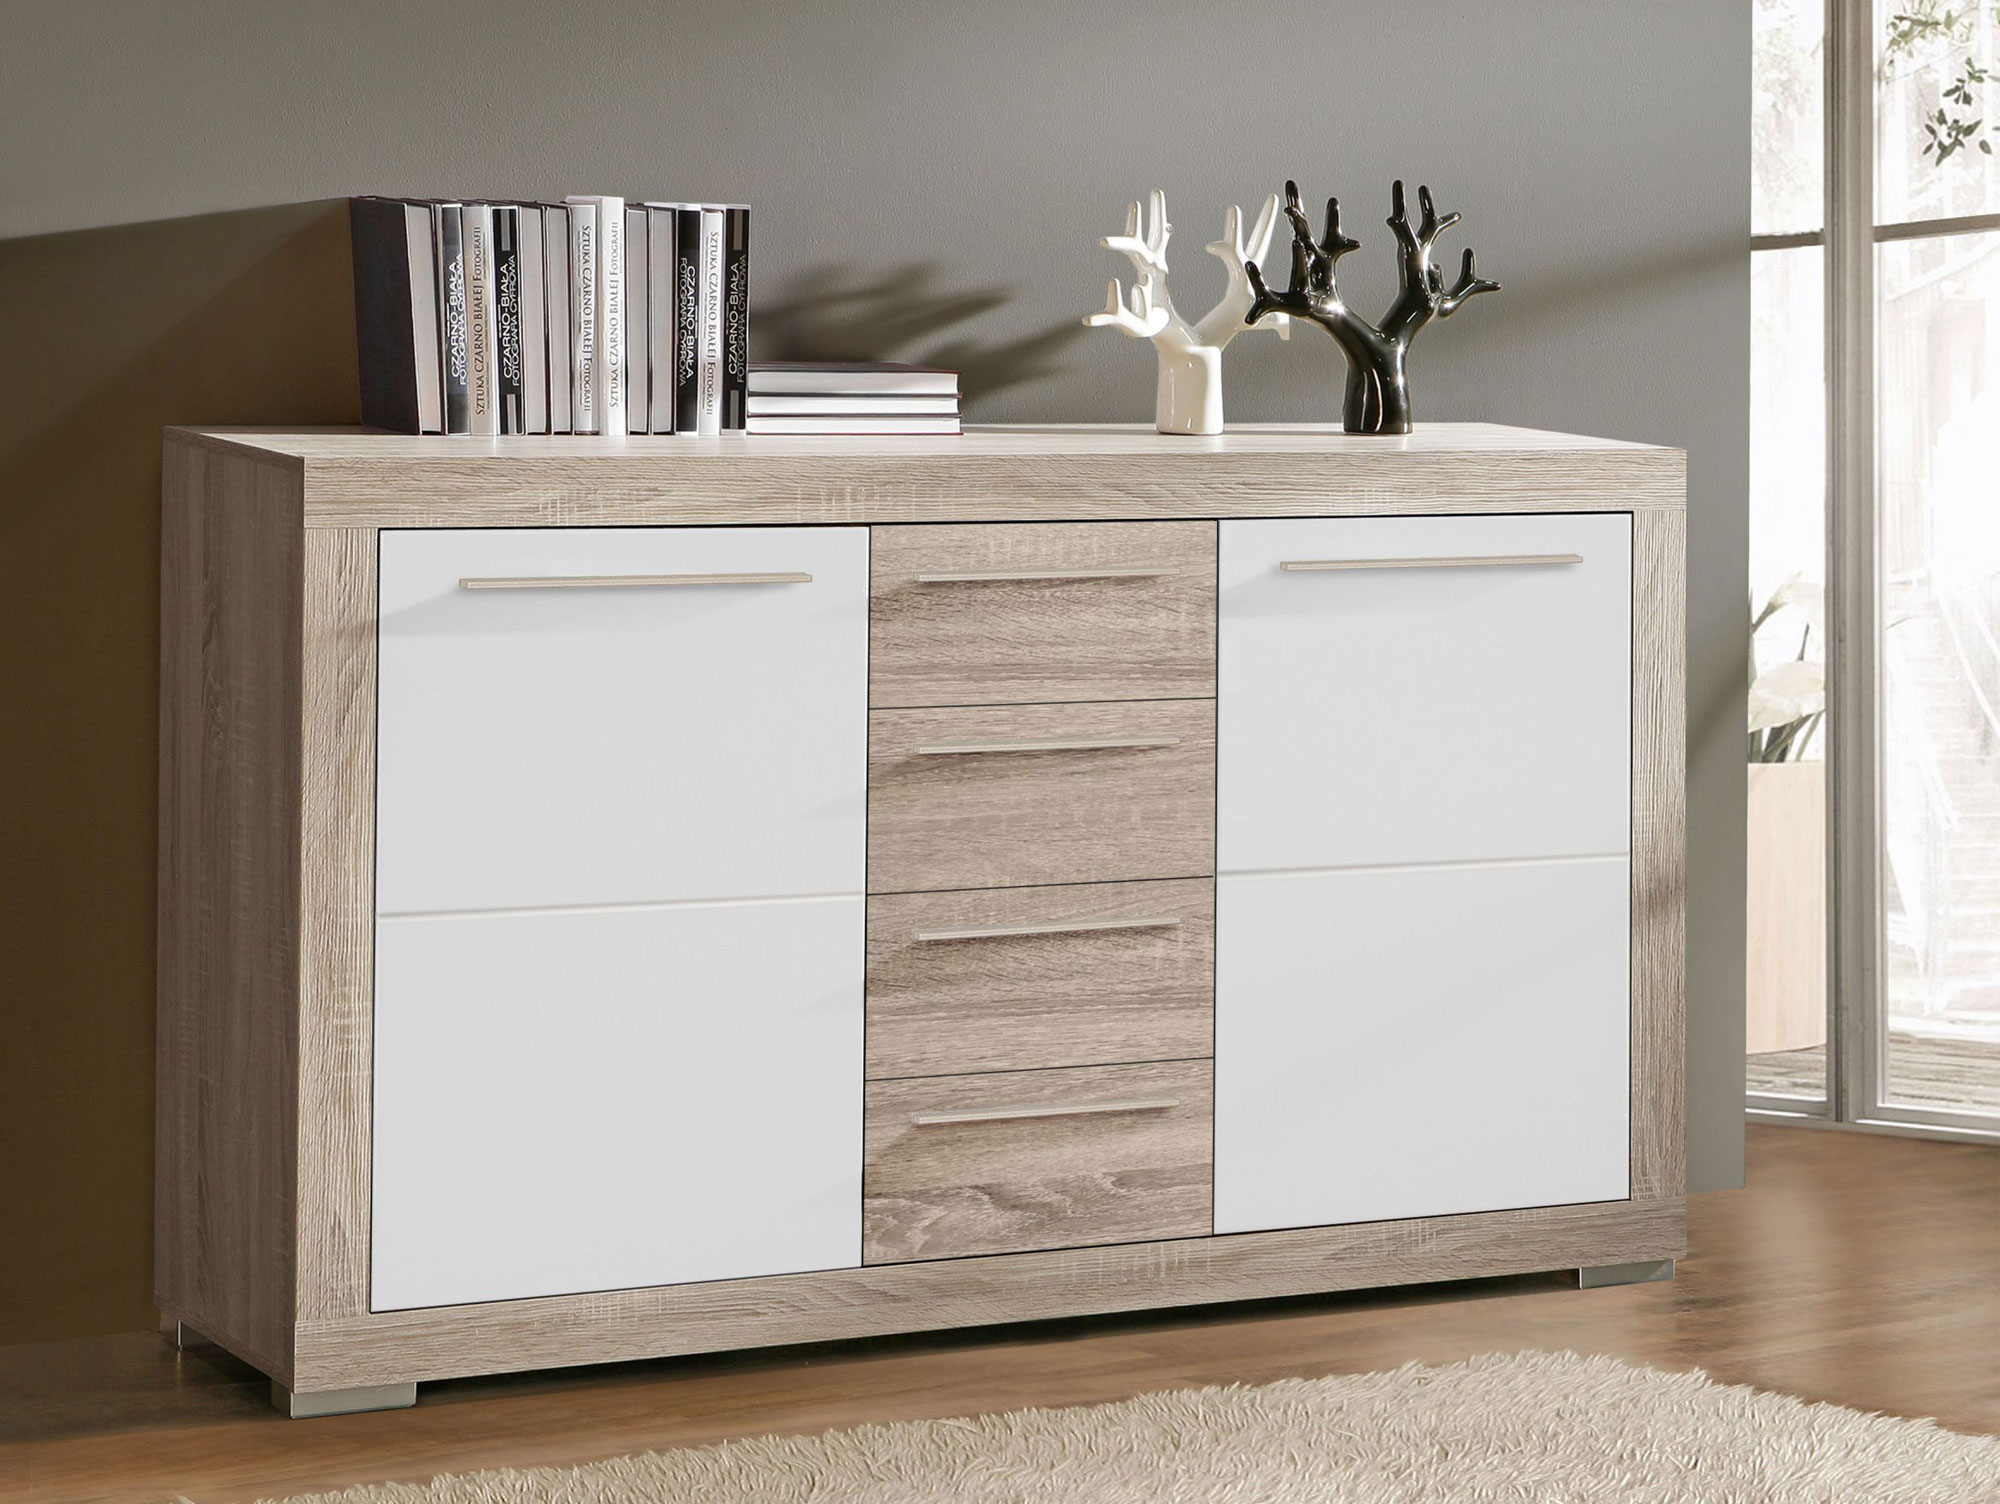 amberg sideboard eiche sonoma grau wei hochglanz. Black Bedroom Furniture Sets. Home Design Ideas